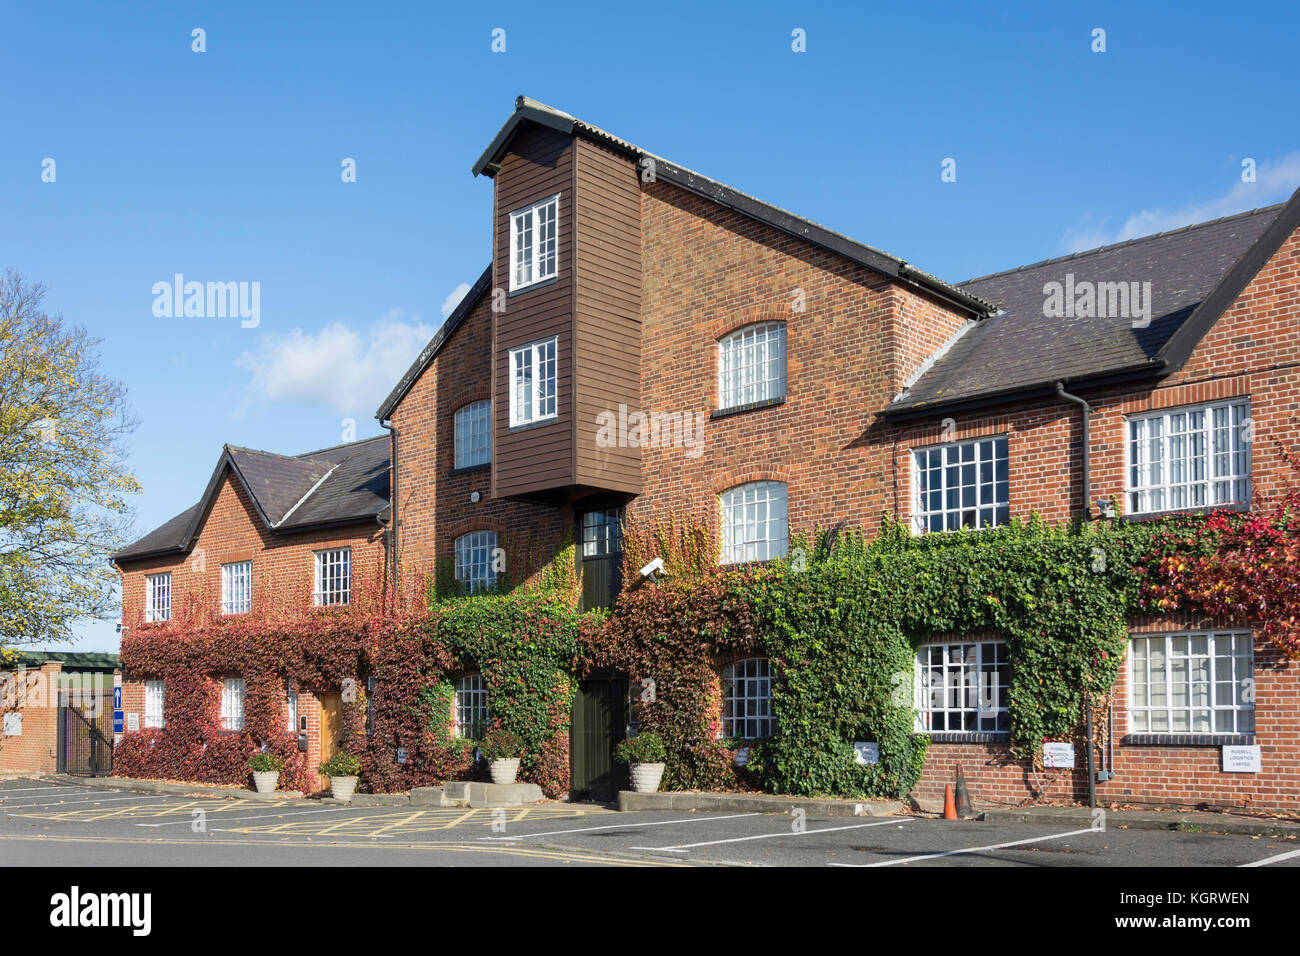 The Old Mill House on River Colne, Horton Road, Stanwell Moor, Surrey, England, United Kingdom - Stock Image